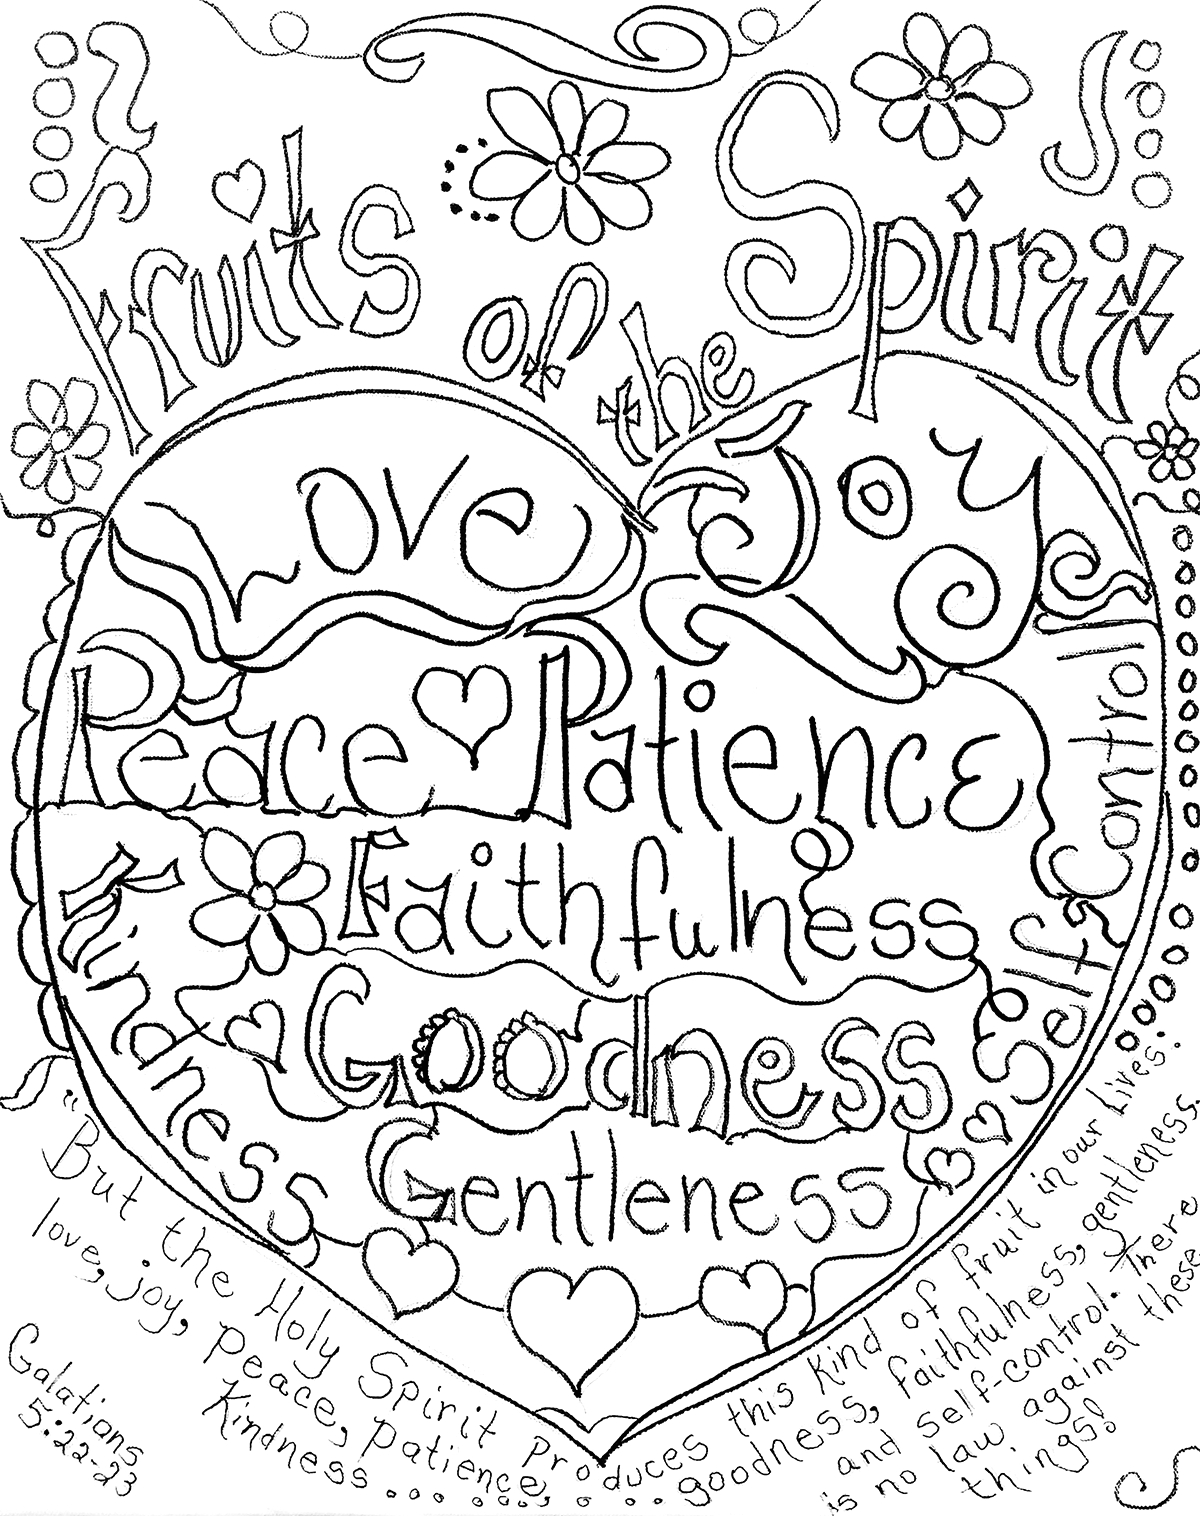 Fruit Of the Spirit Coloring Page Free Printable Fruits Of the Spirit Coloring Page by Carolyn Altman